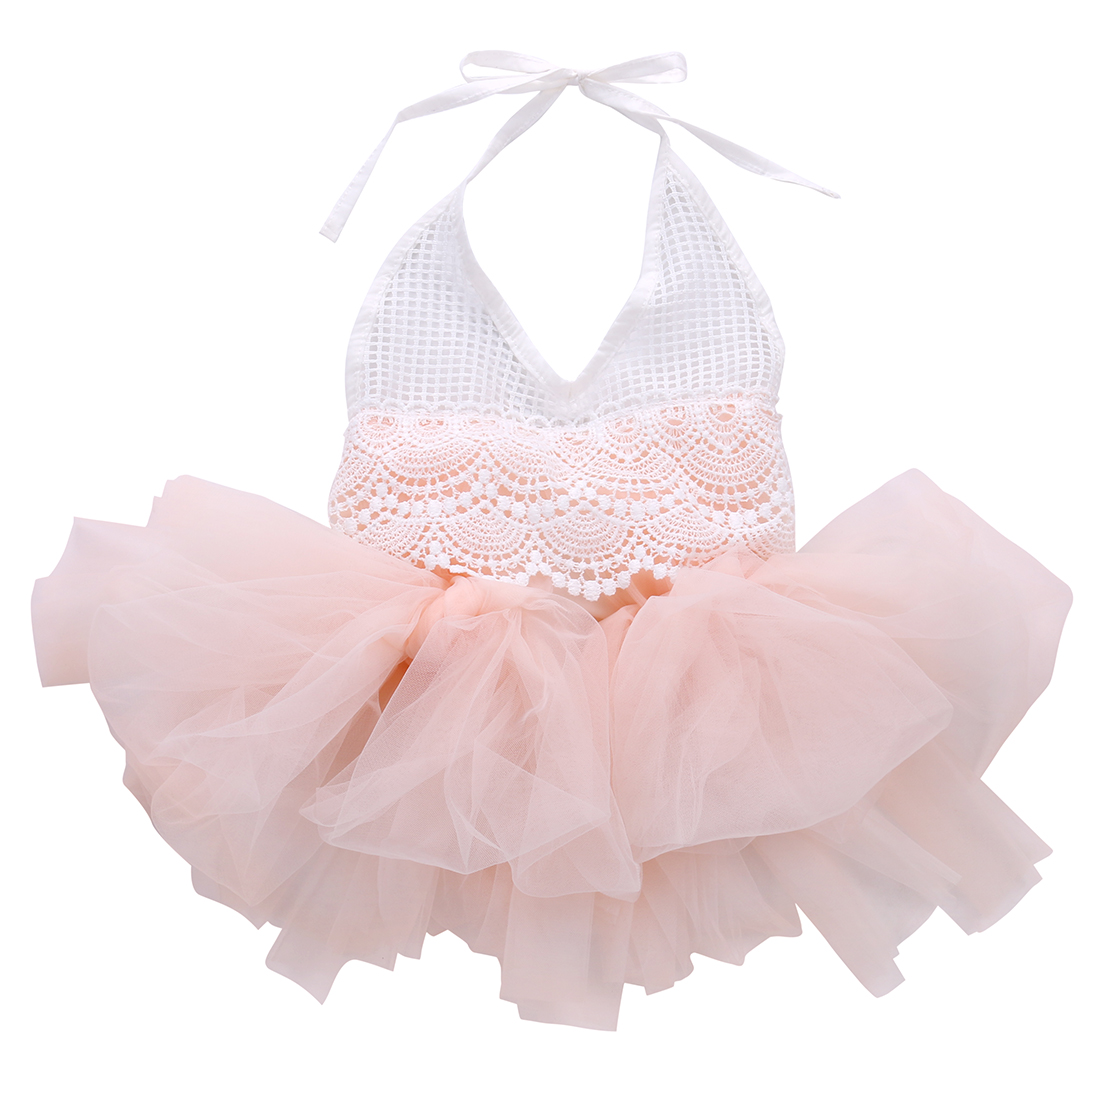 2019 Fashion Cute Kids Baby Girl Ball Gown Dress Lace